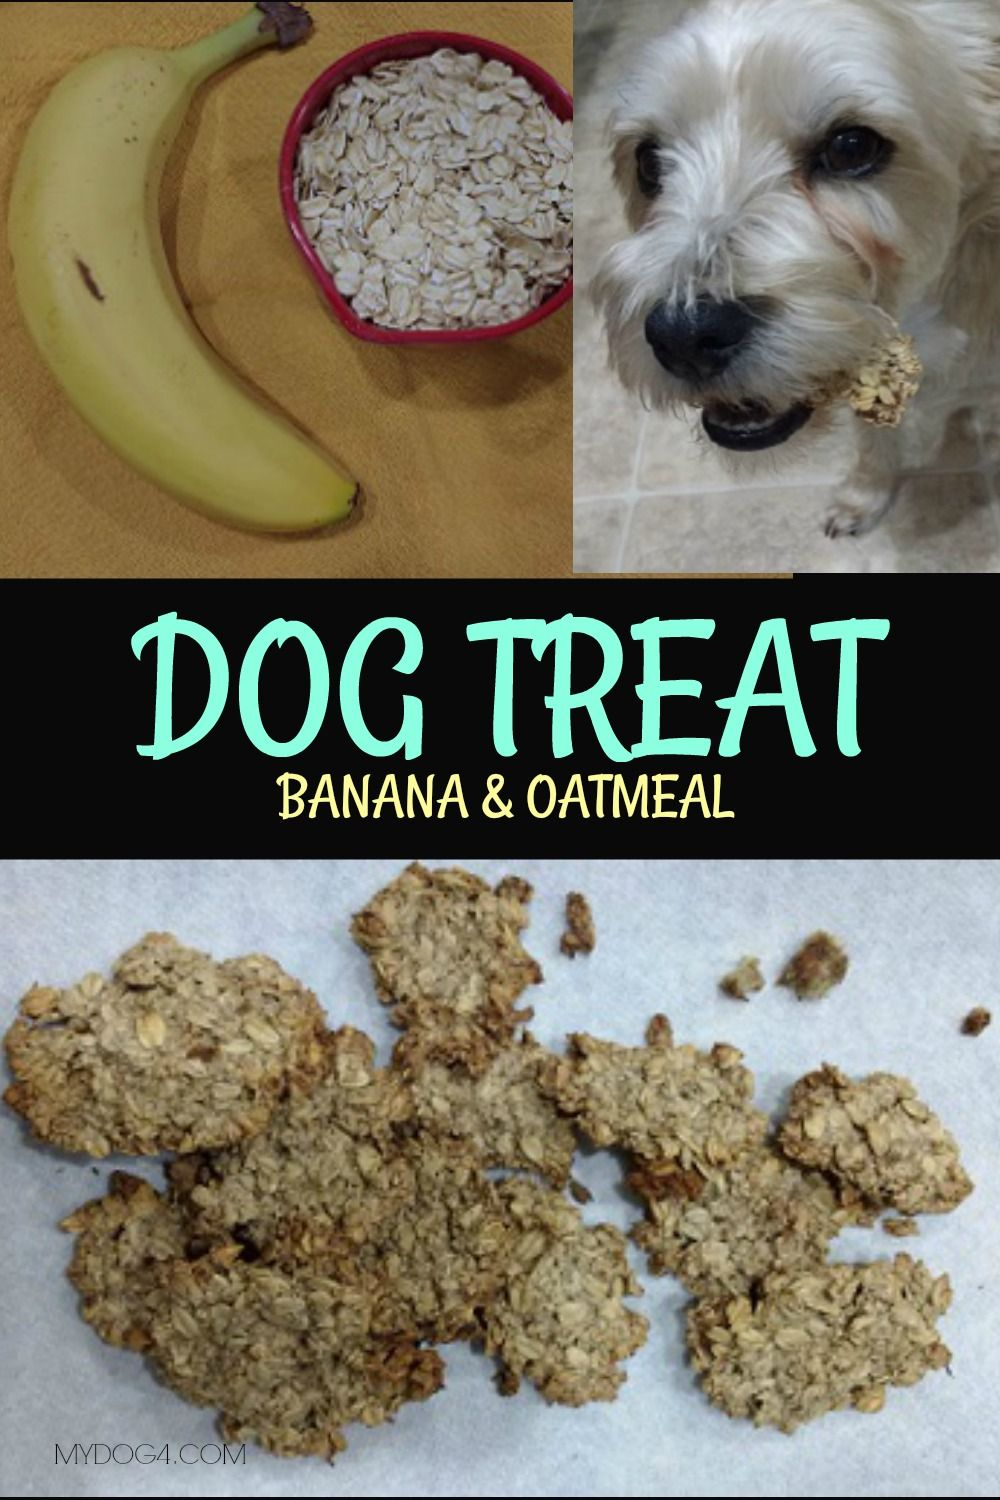 Dog Treat Dog Treats Dog Food Recipes Dog Biscuits